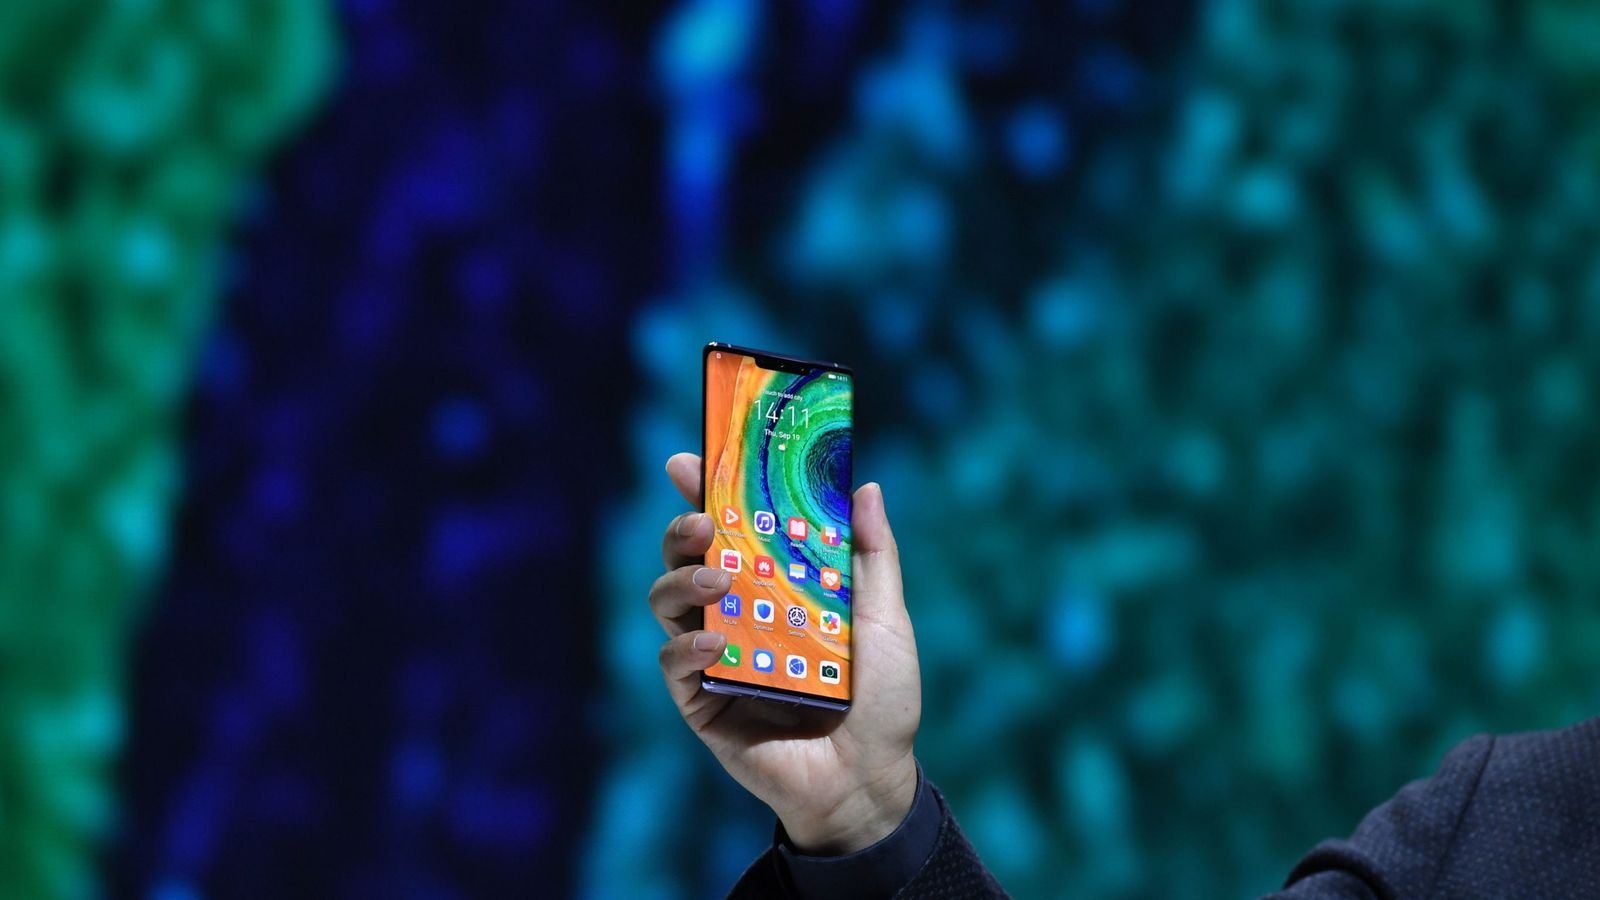 Huawei Mate 30: New Huawei phone to launch without Google apps